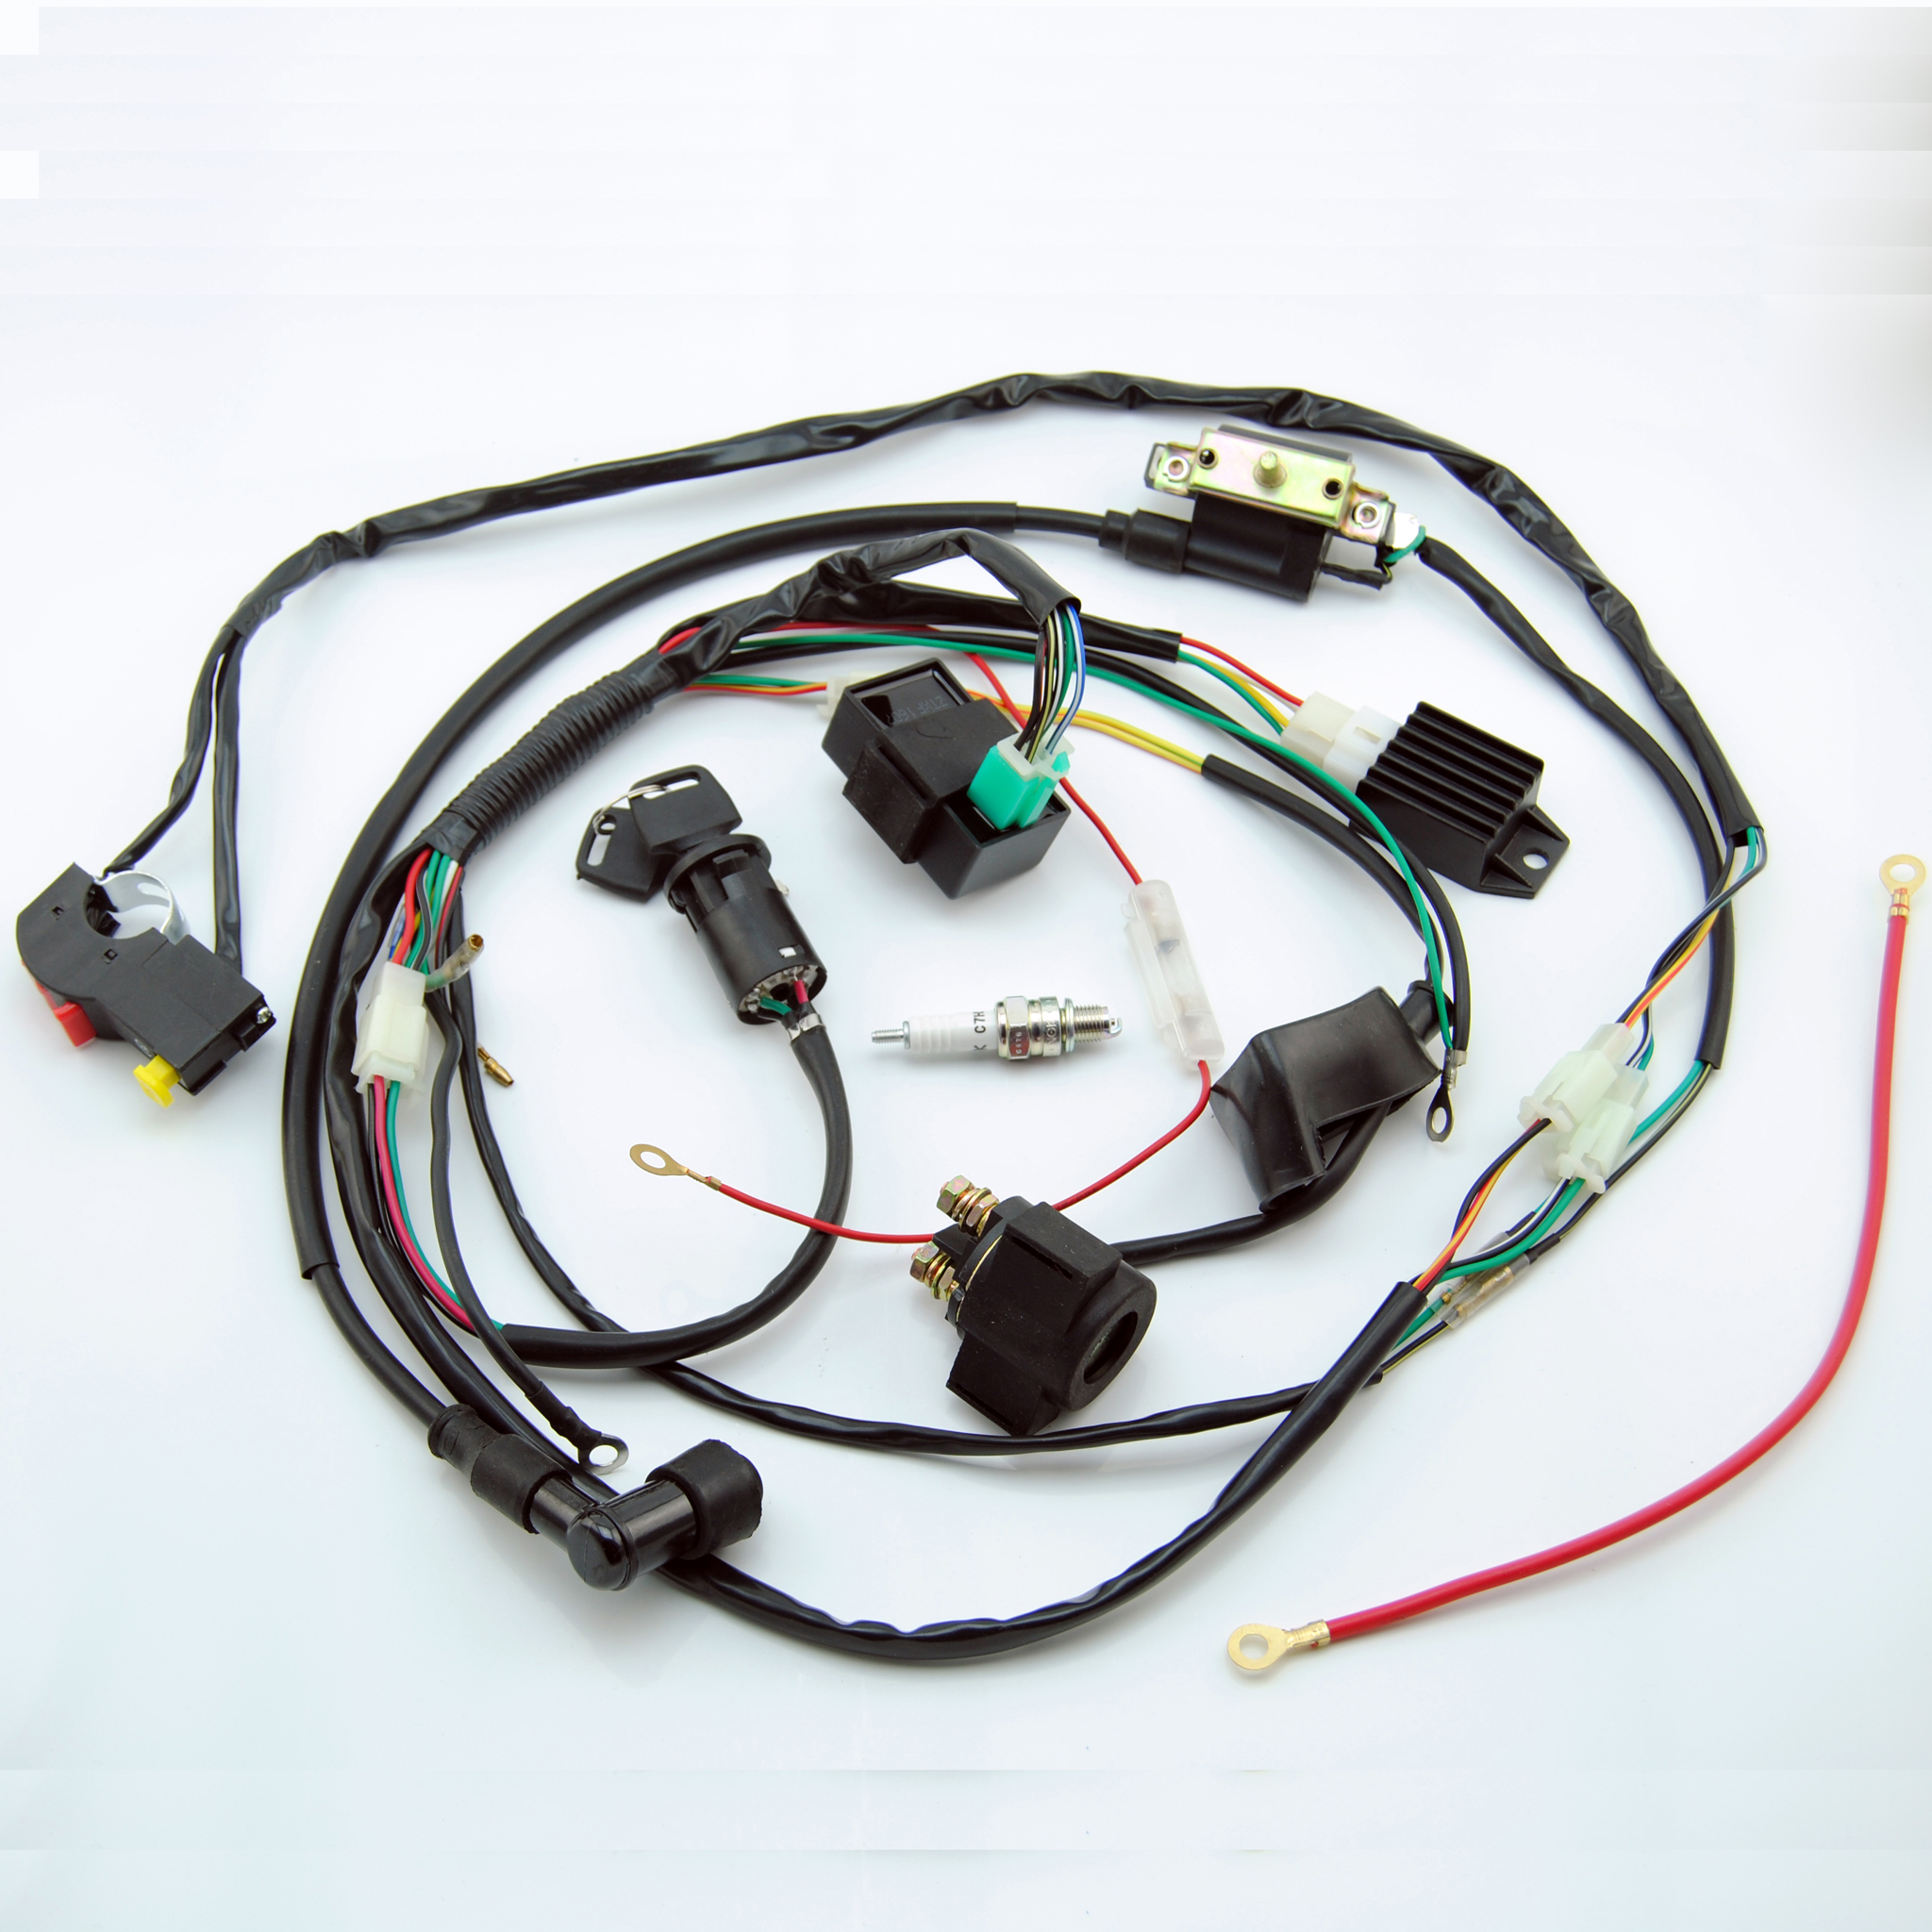 hight resolution of complete electric start engine wiring harness loom 110 125cc quad bike atv buggy free shipping